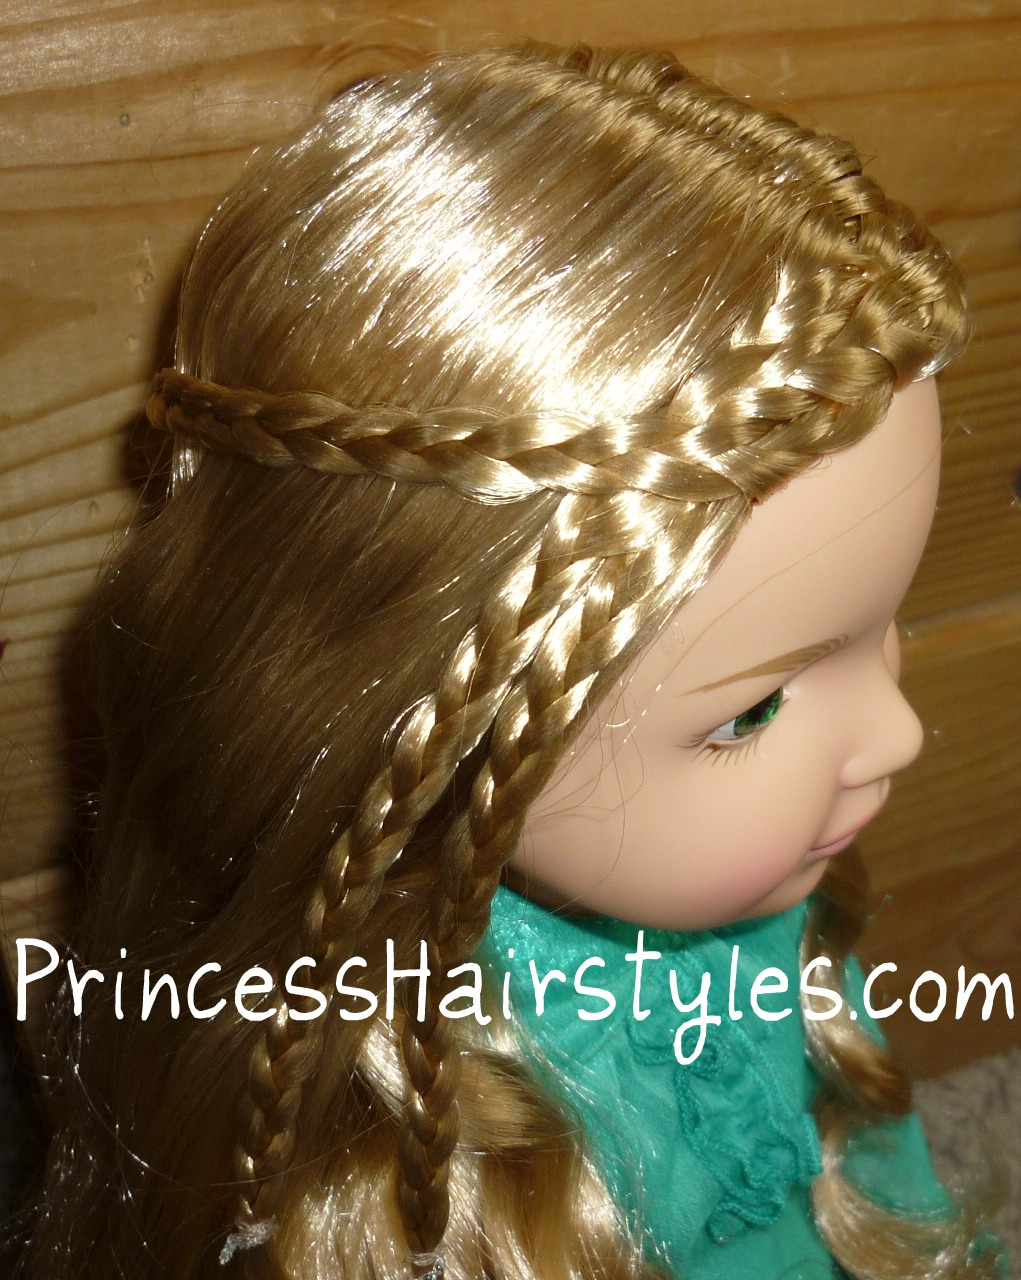 bfc ink doll hairstyle | hairstyles for girls - princess hairstyles